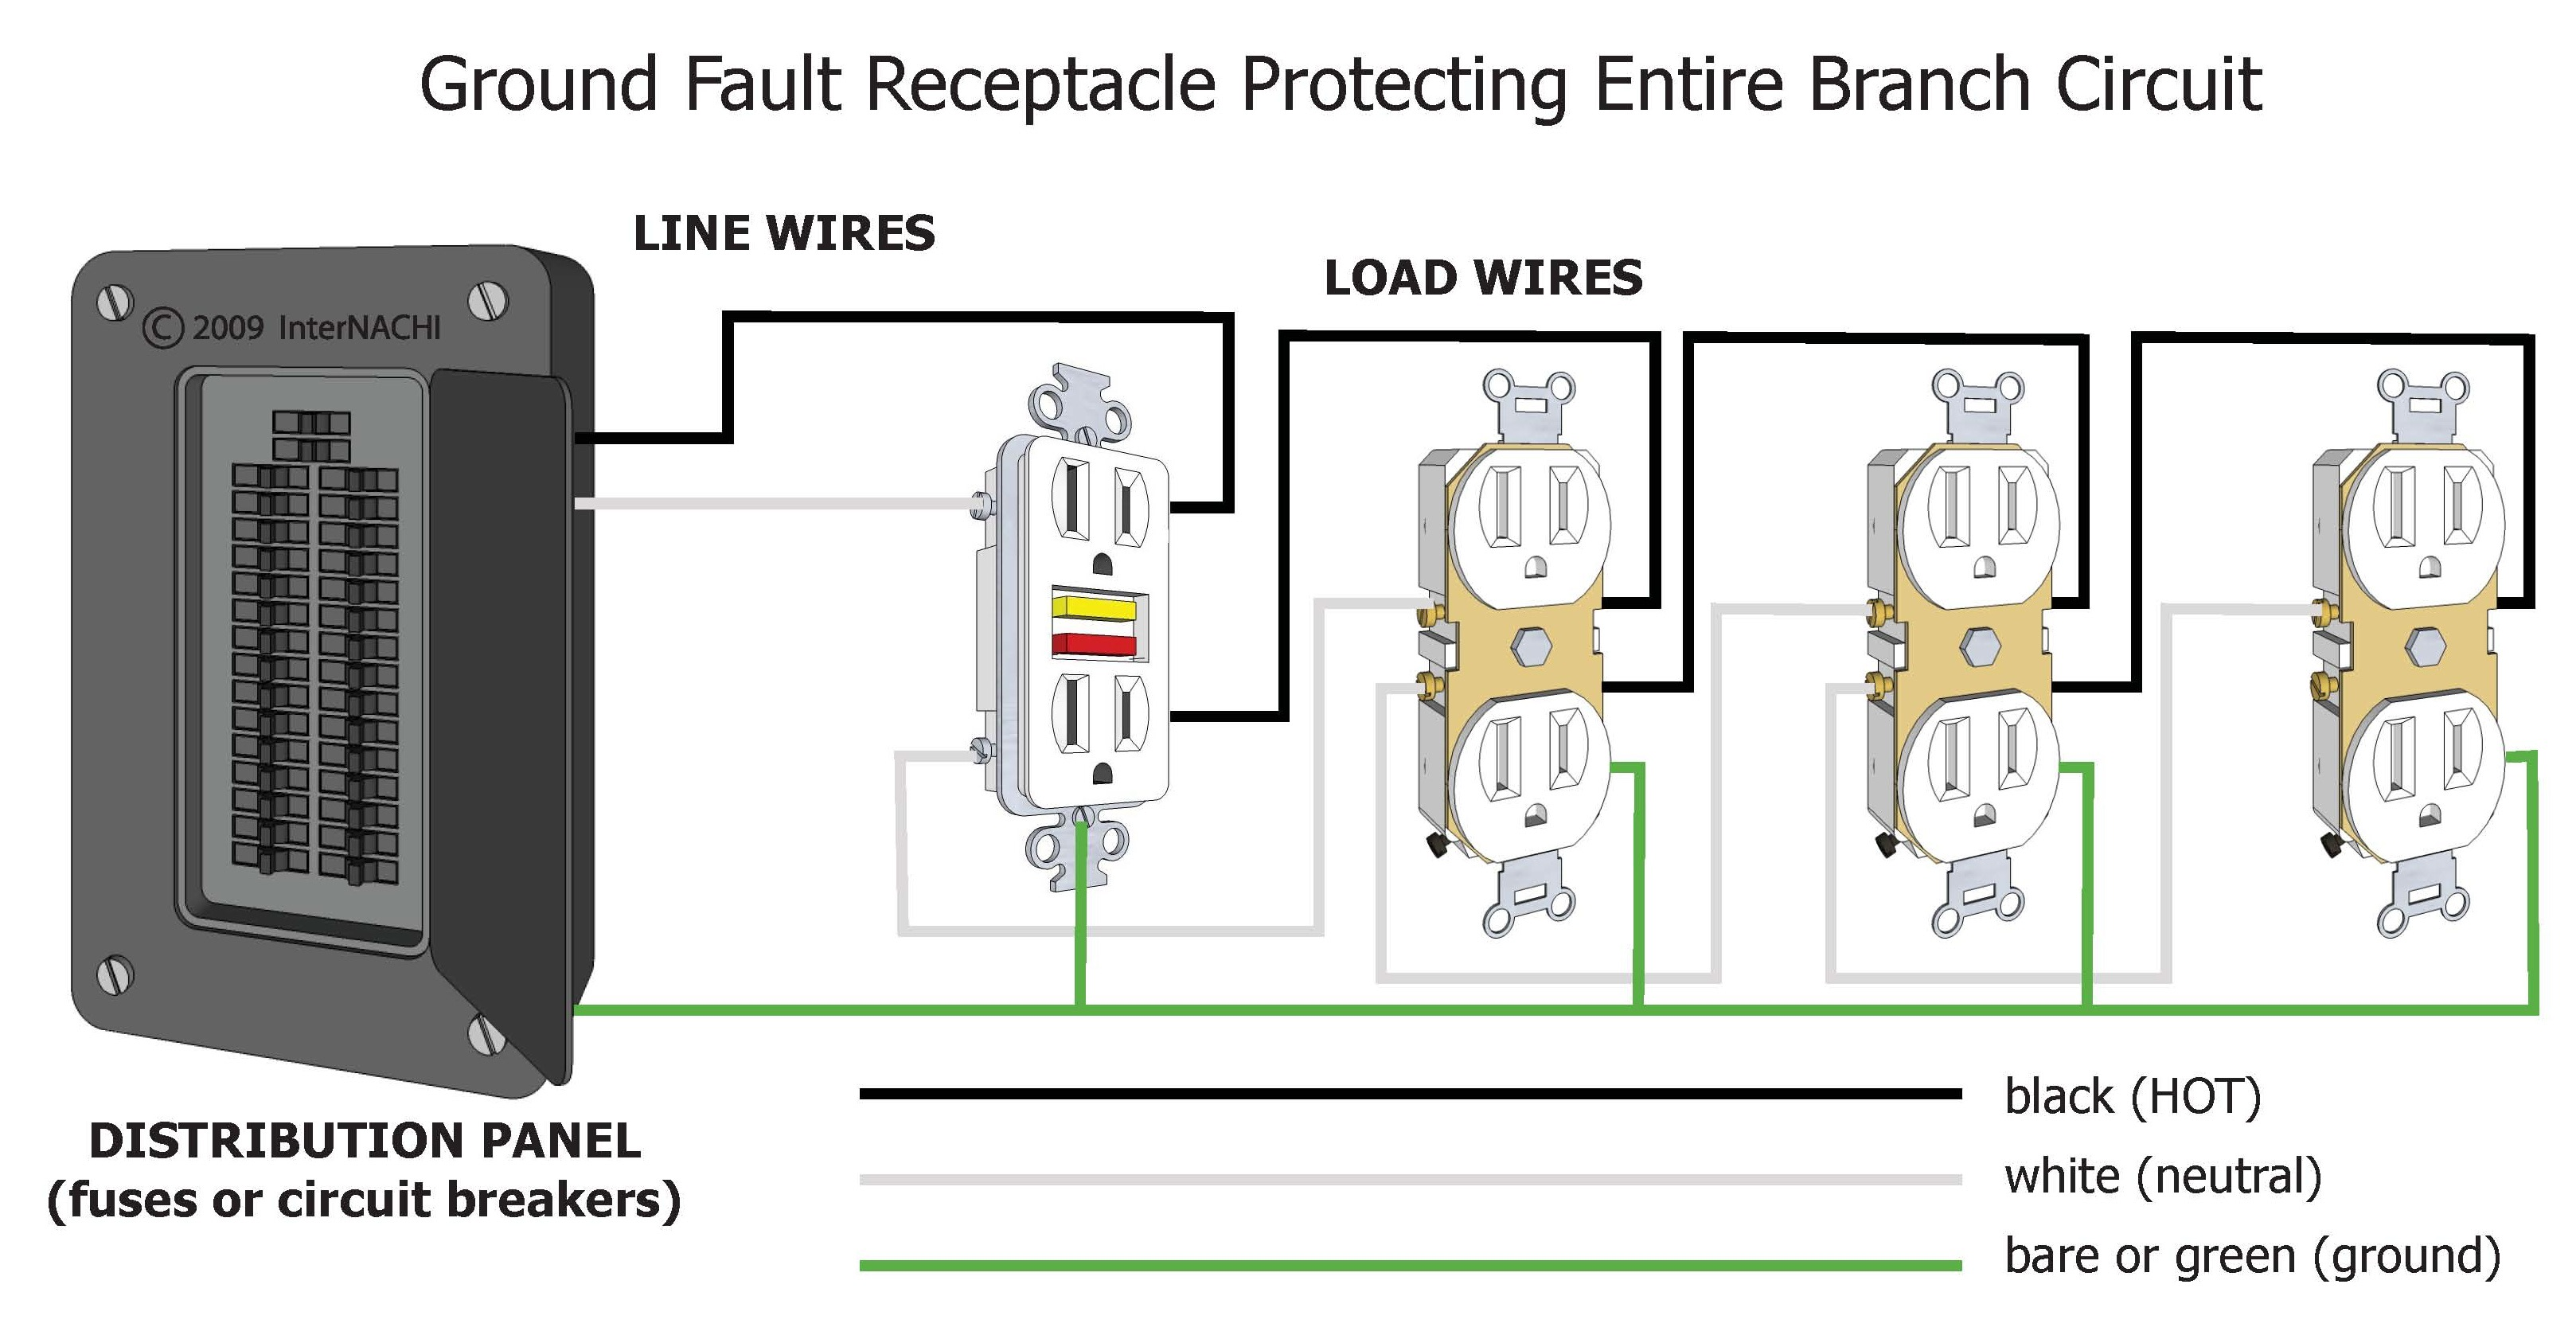 Gfci Circuit Breaker Wiring Diagram - Explained Wiring Diagram on gfci wiring multiple outlets to circuit, wiring 2 gang outlet box, wiring outlets in series,